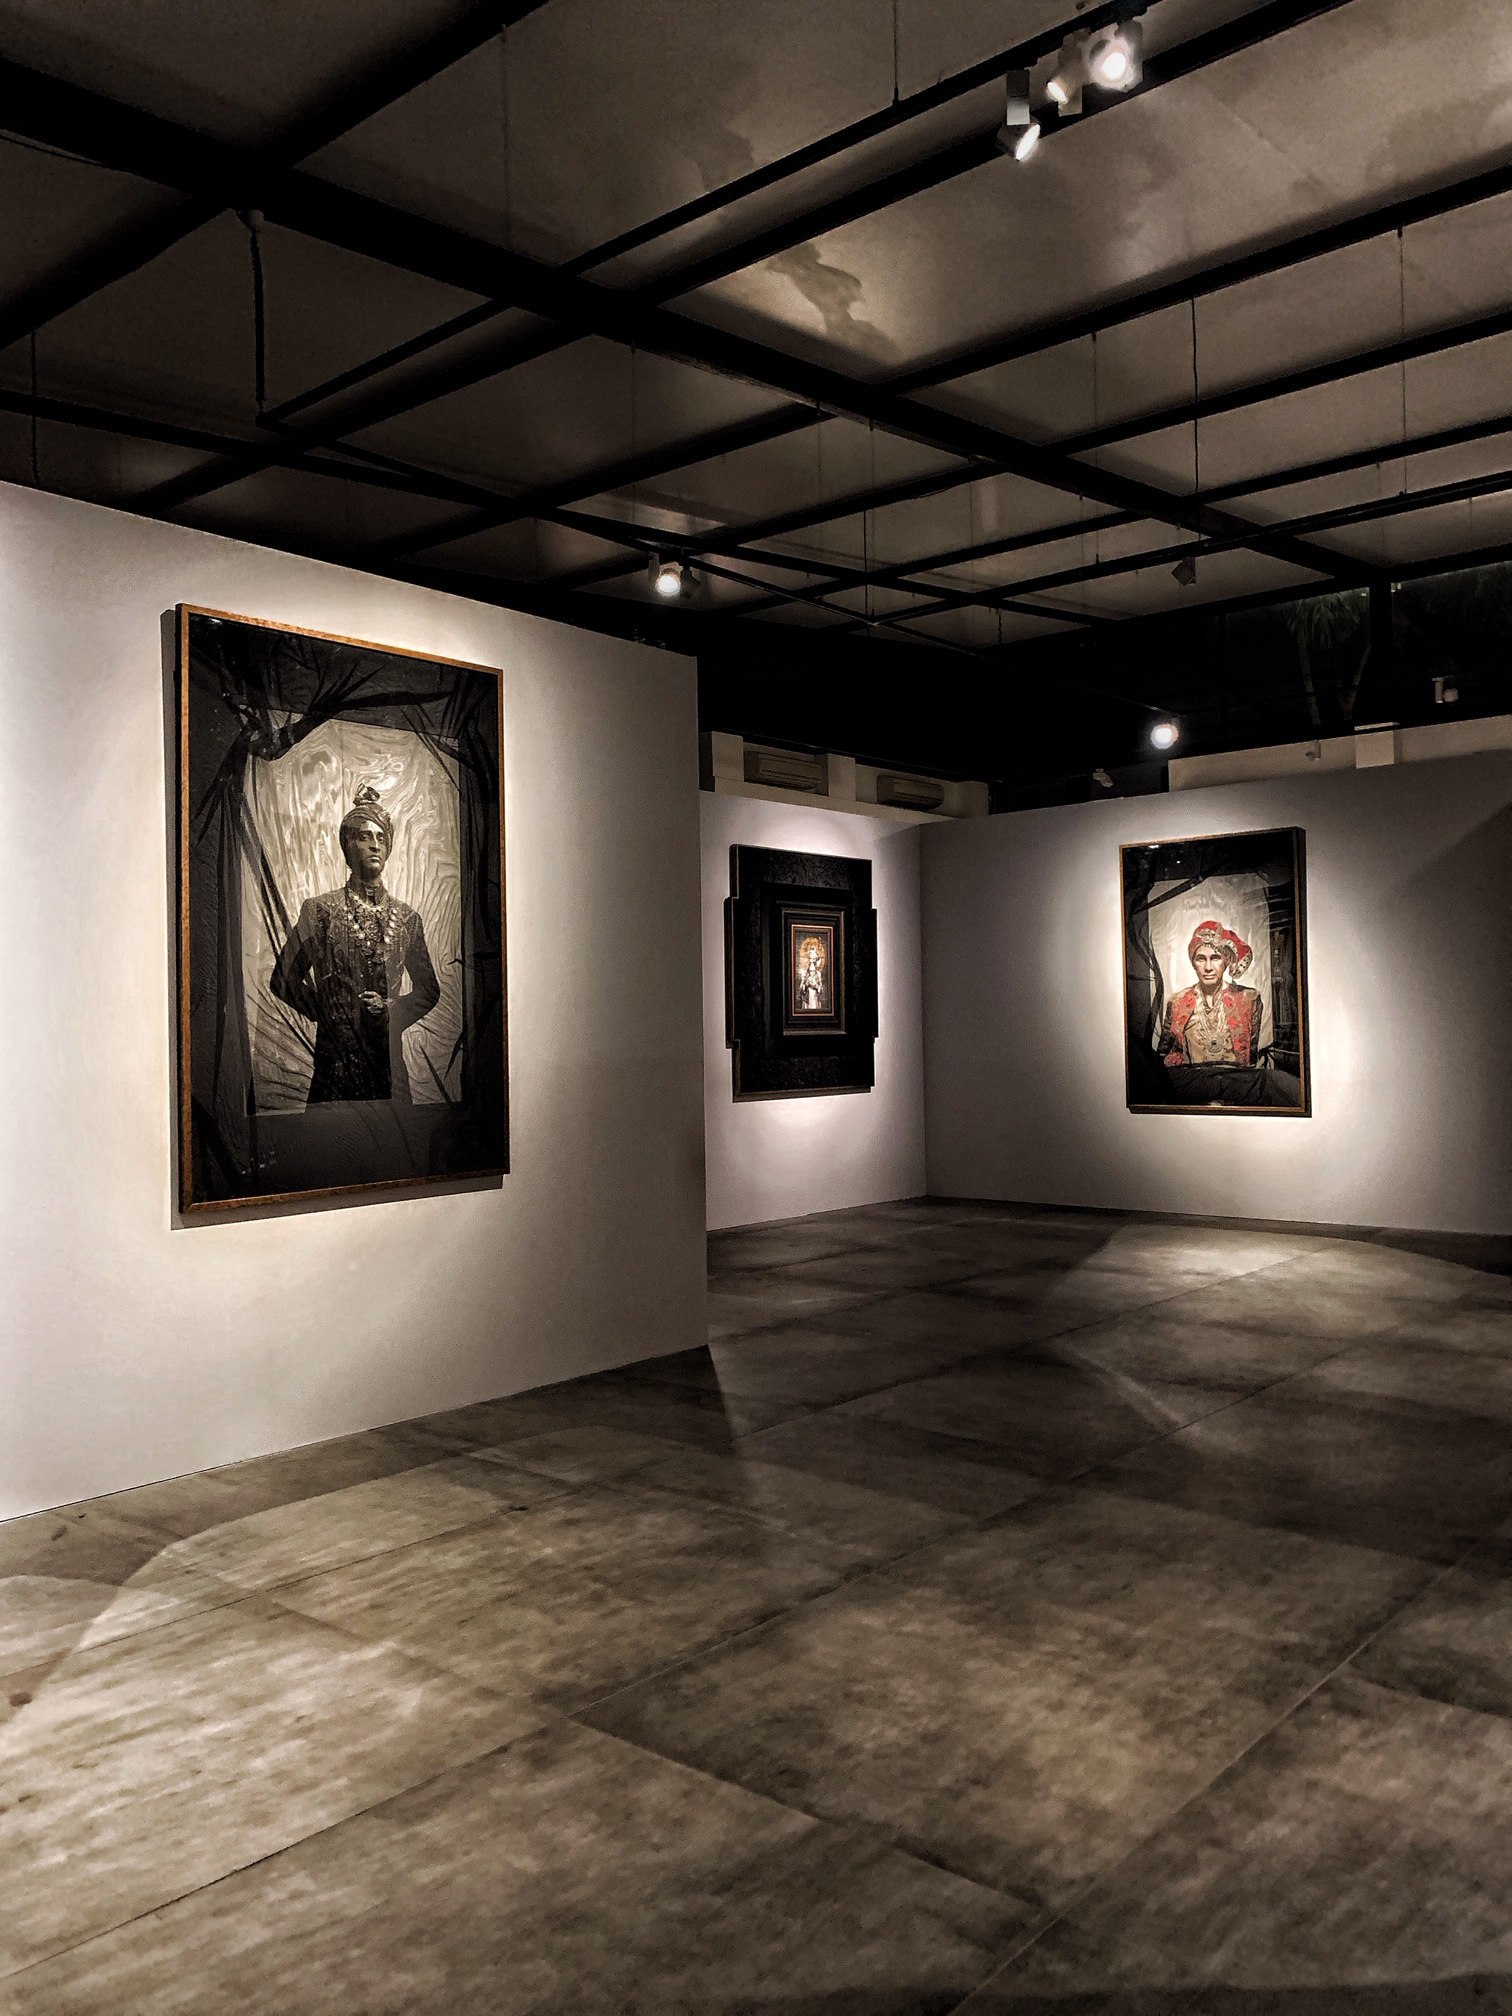 The exhibition is a result of Valaya's curious interest in people and spaces, and photographic interests around portraiture and architecture | JJ Valaya and Raghu Rai at STIR Gallery | Lalaari | STIRworld